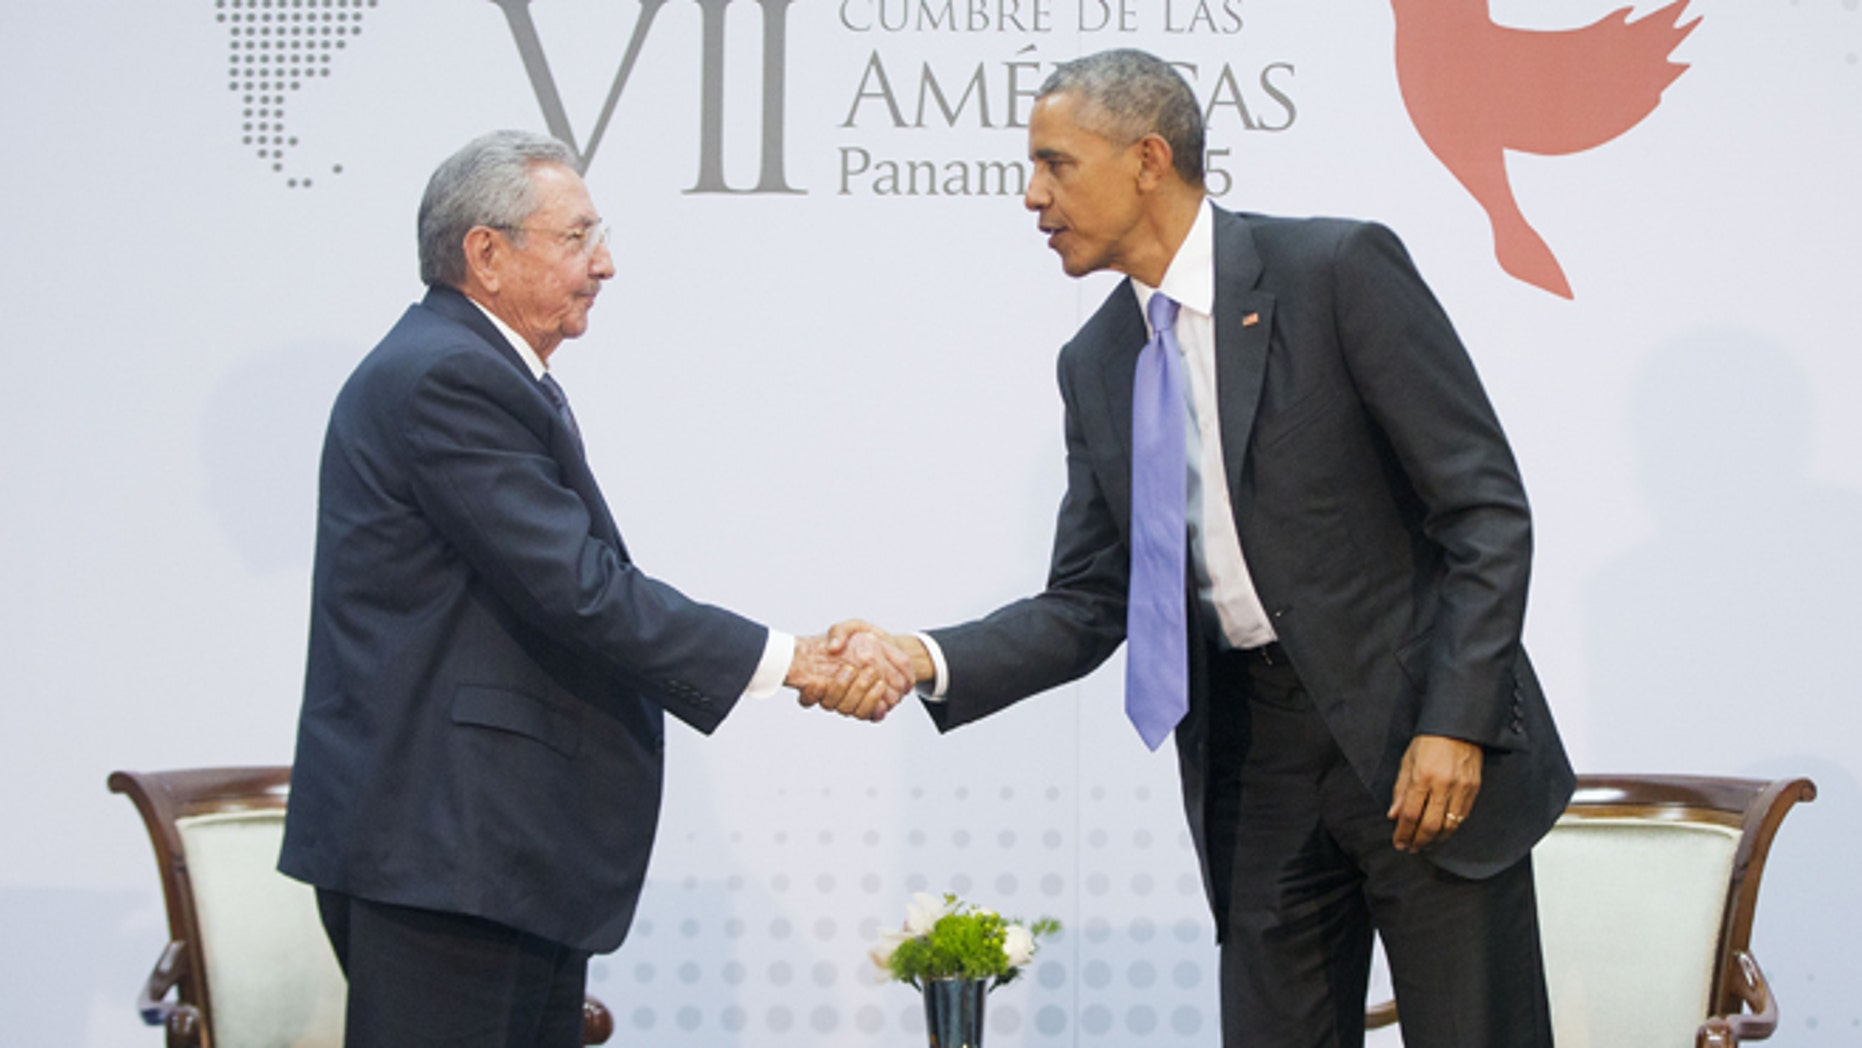 US President Barack Obama and Cuban President Raul Castro shake hands during their meeting at the Summit of the Americas in Panama City, Panama, Saturday, April 11, 2015. (AP Photo/Pablo Martinez Monsivais)